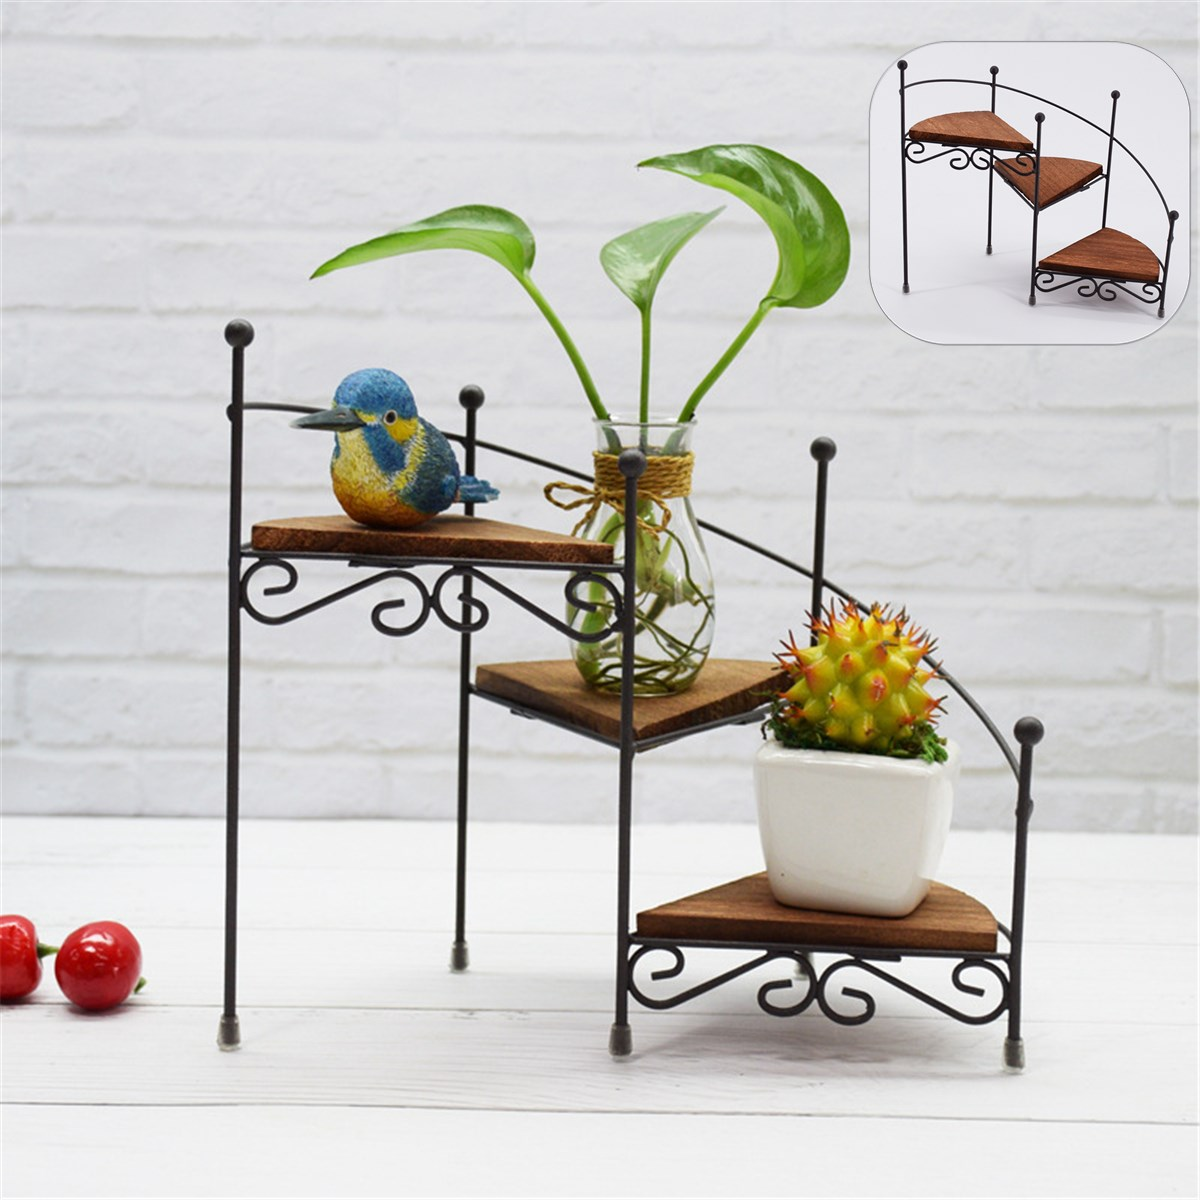 Retro Decorative Iron Plant Rack Stand Plants Succulent Shelf 3 Layers Staircase Desktop Garden Flower Stand With Wood Plate